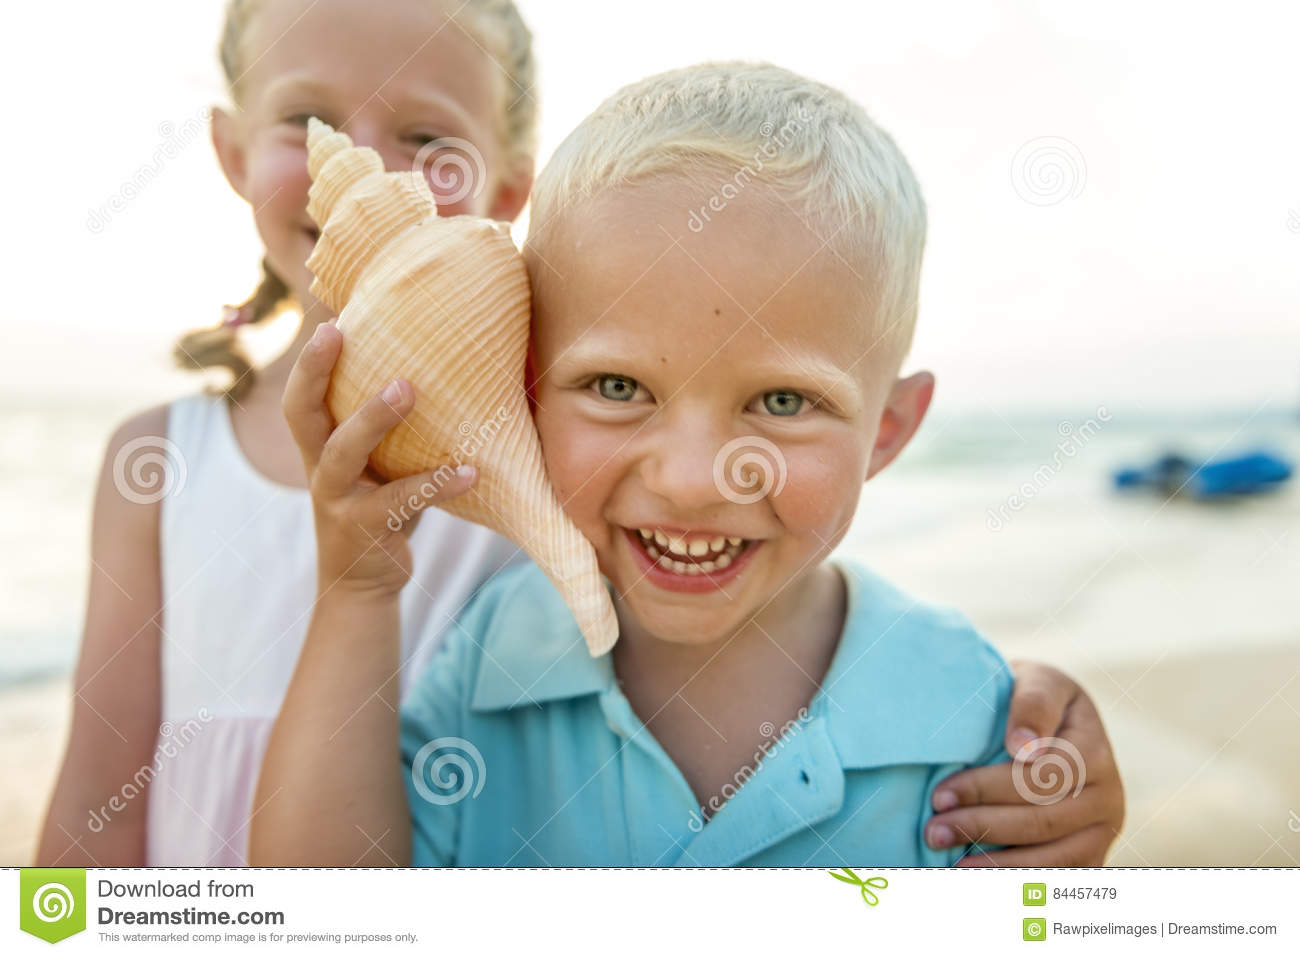 Child Kids Sibling Beach Summer Vacation Concept